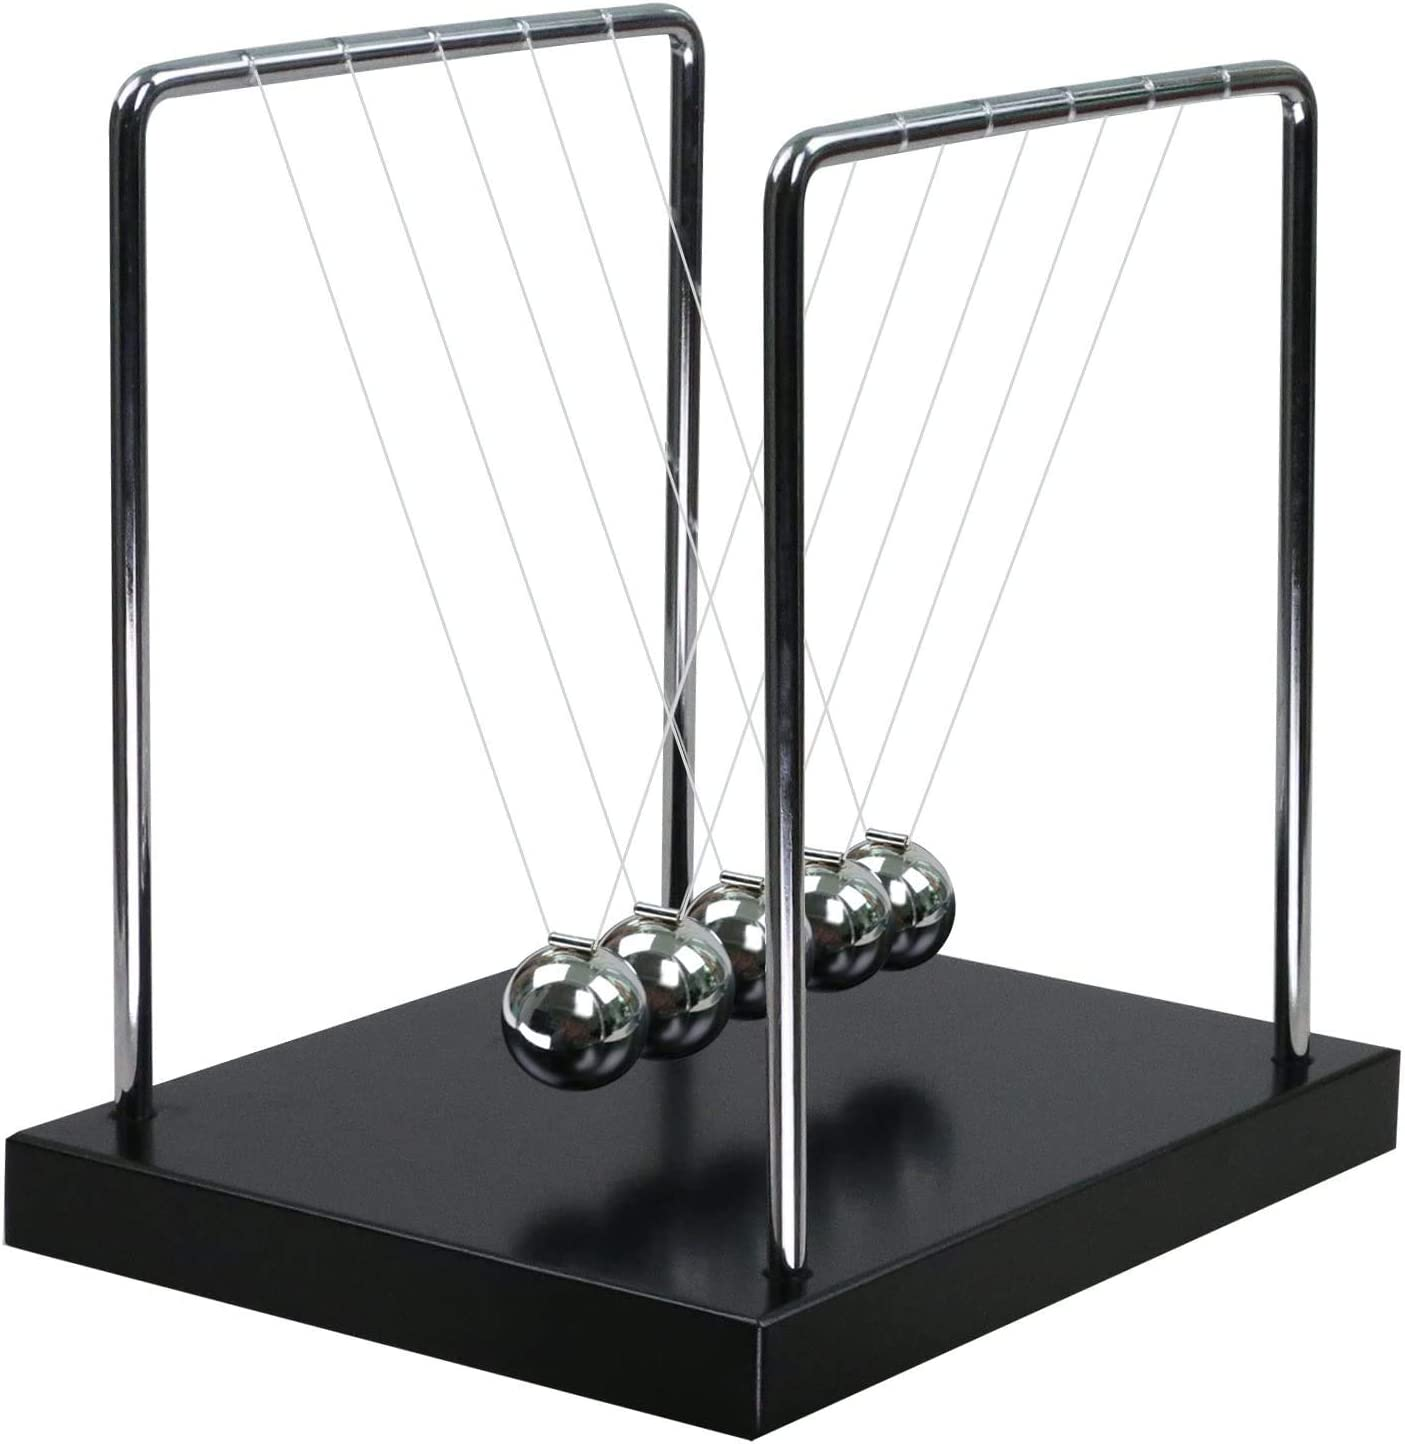 Newton's Cradle Office Desktop Black Wooden Base Science Psychics Desk Fun Gadget Toys Home Decoration'